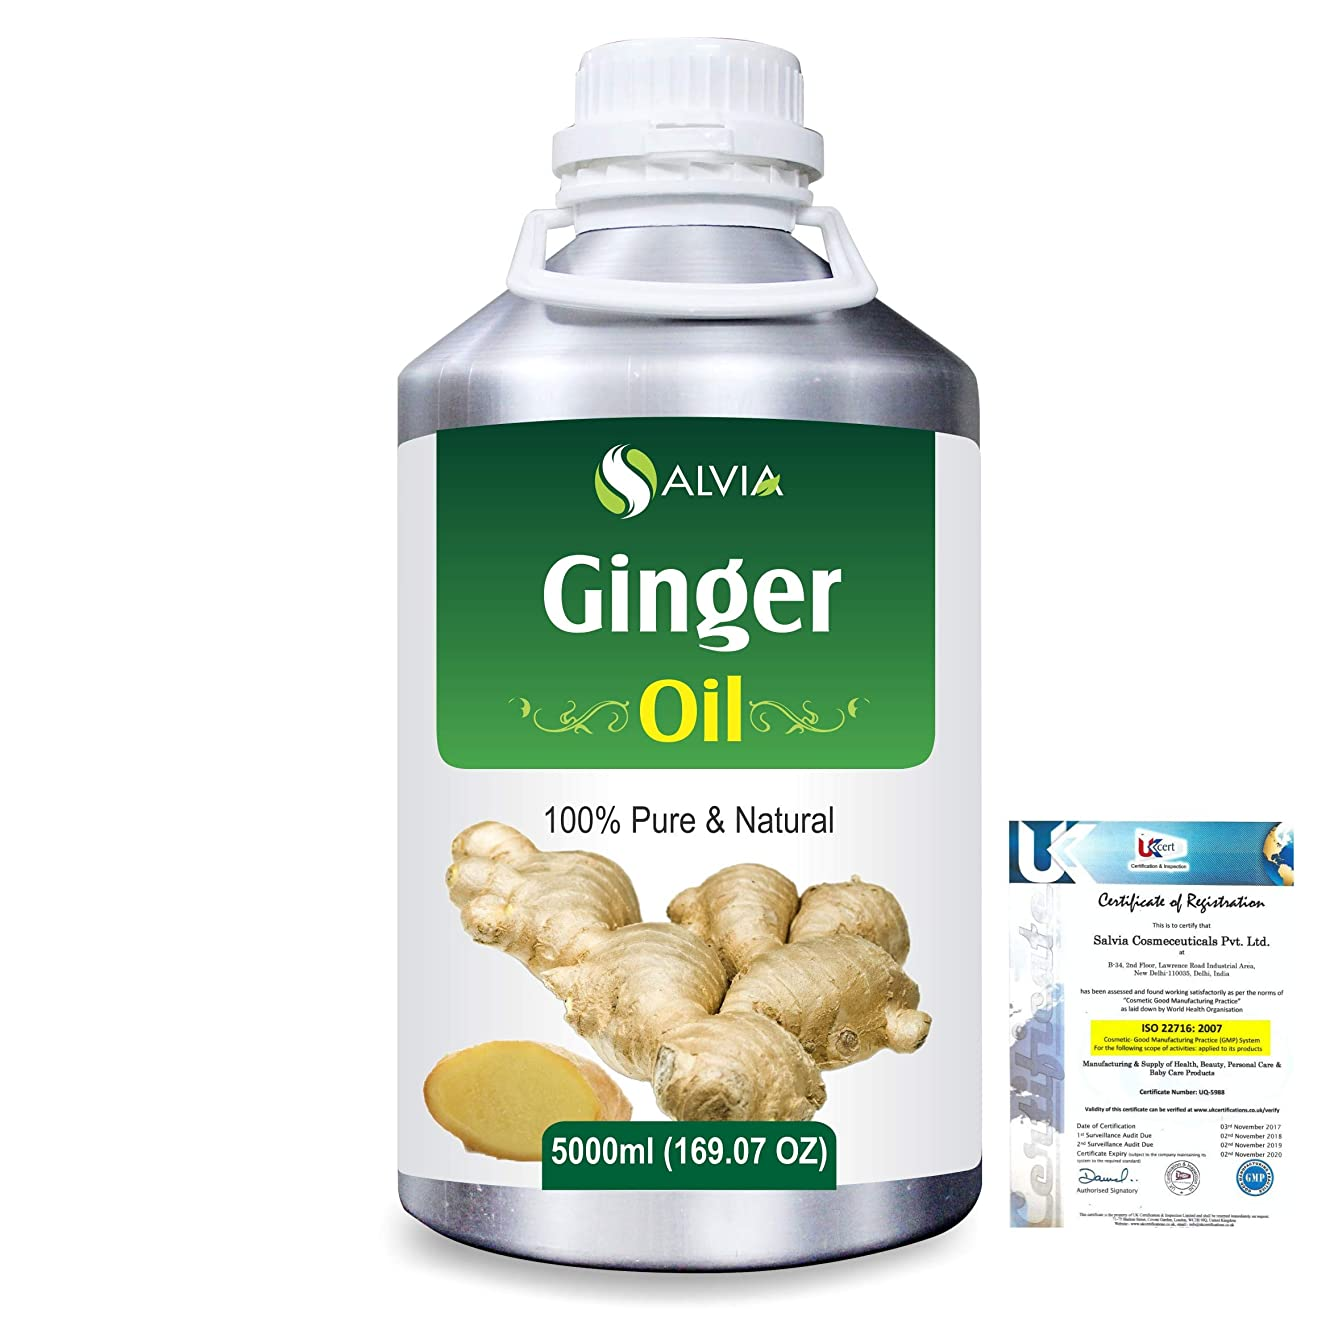 ヒューズ遺伝的ぶどうGinger (Zingiber officinale) 100% Natural Pure Essential Oil 5000ml/169fl.oz.